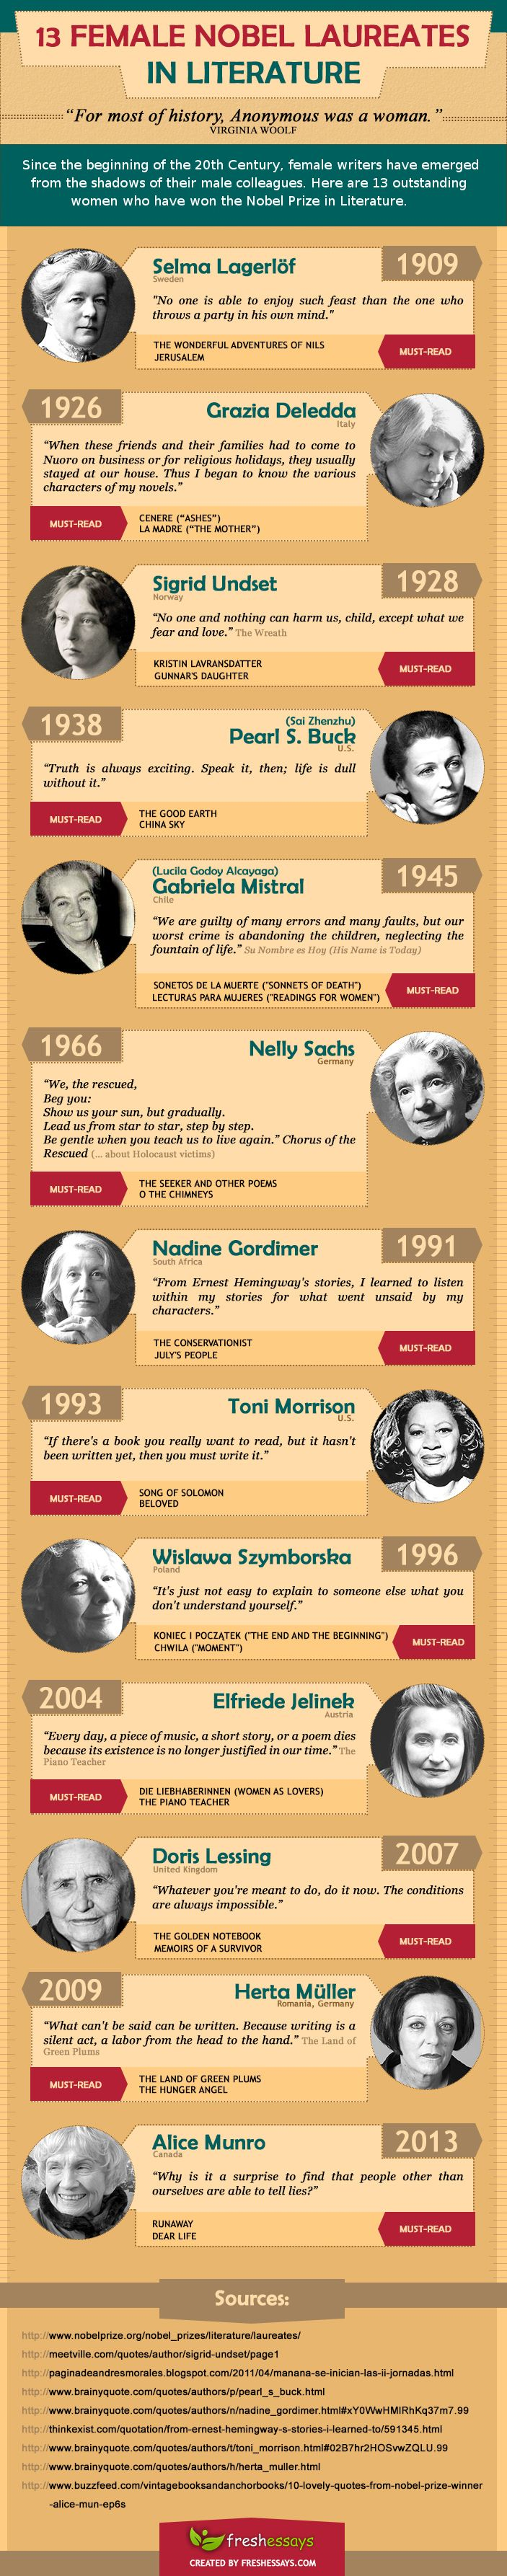 13 Female Nobel Laureates In Literature - Writers Write